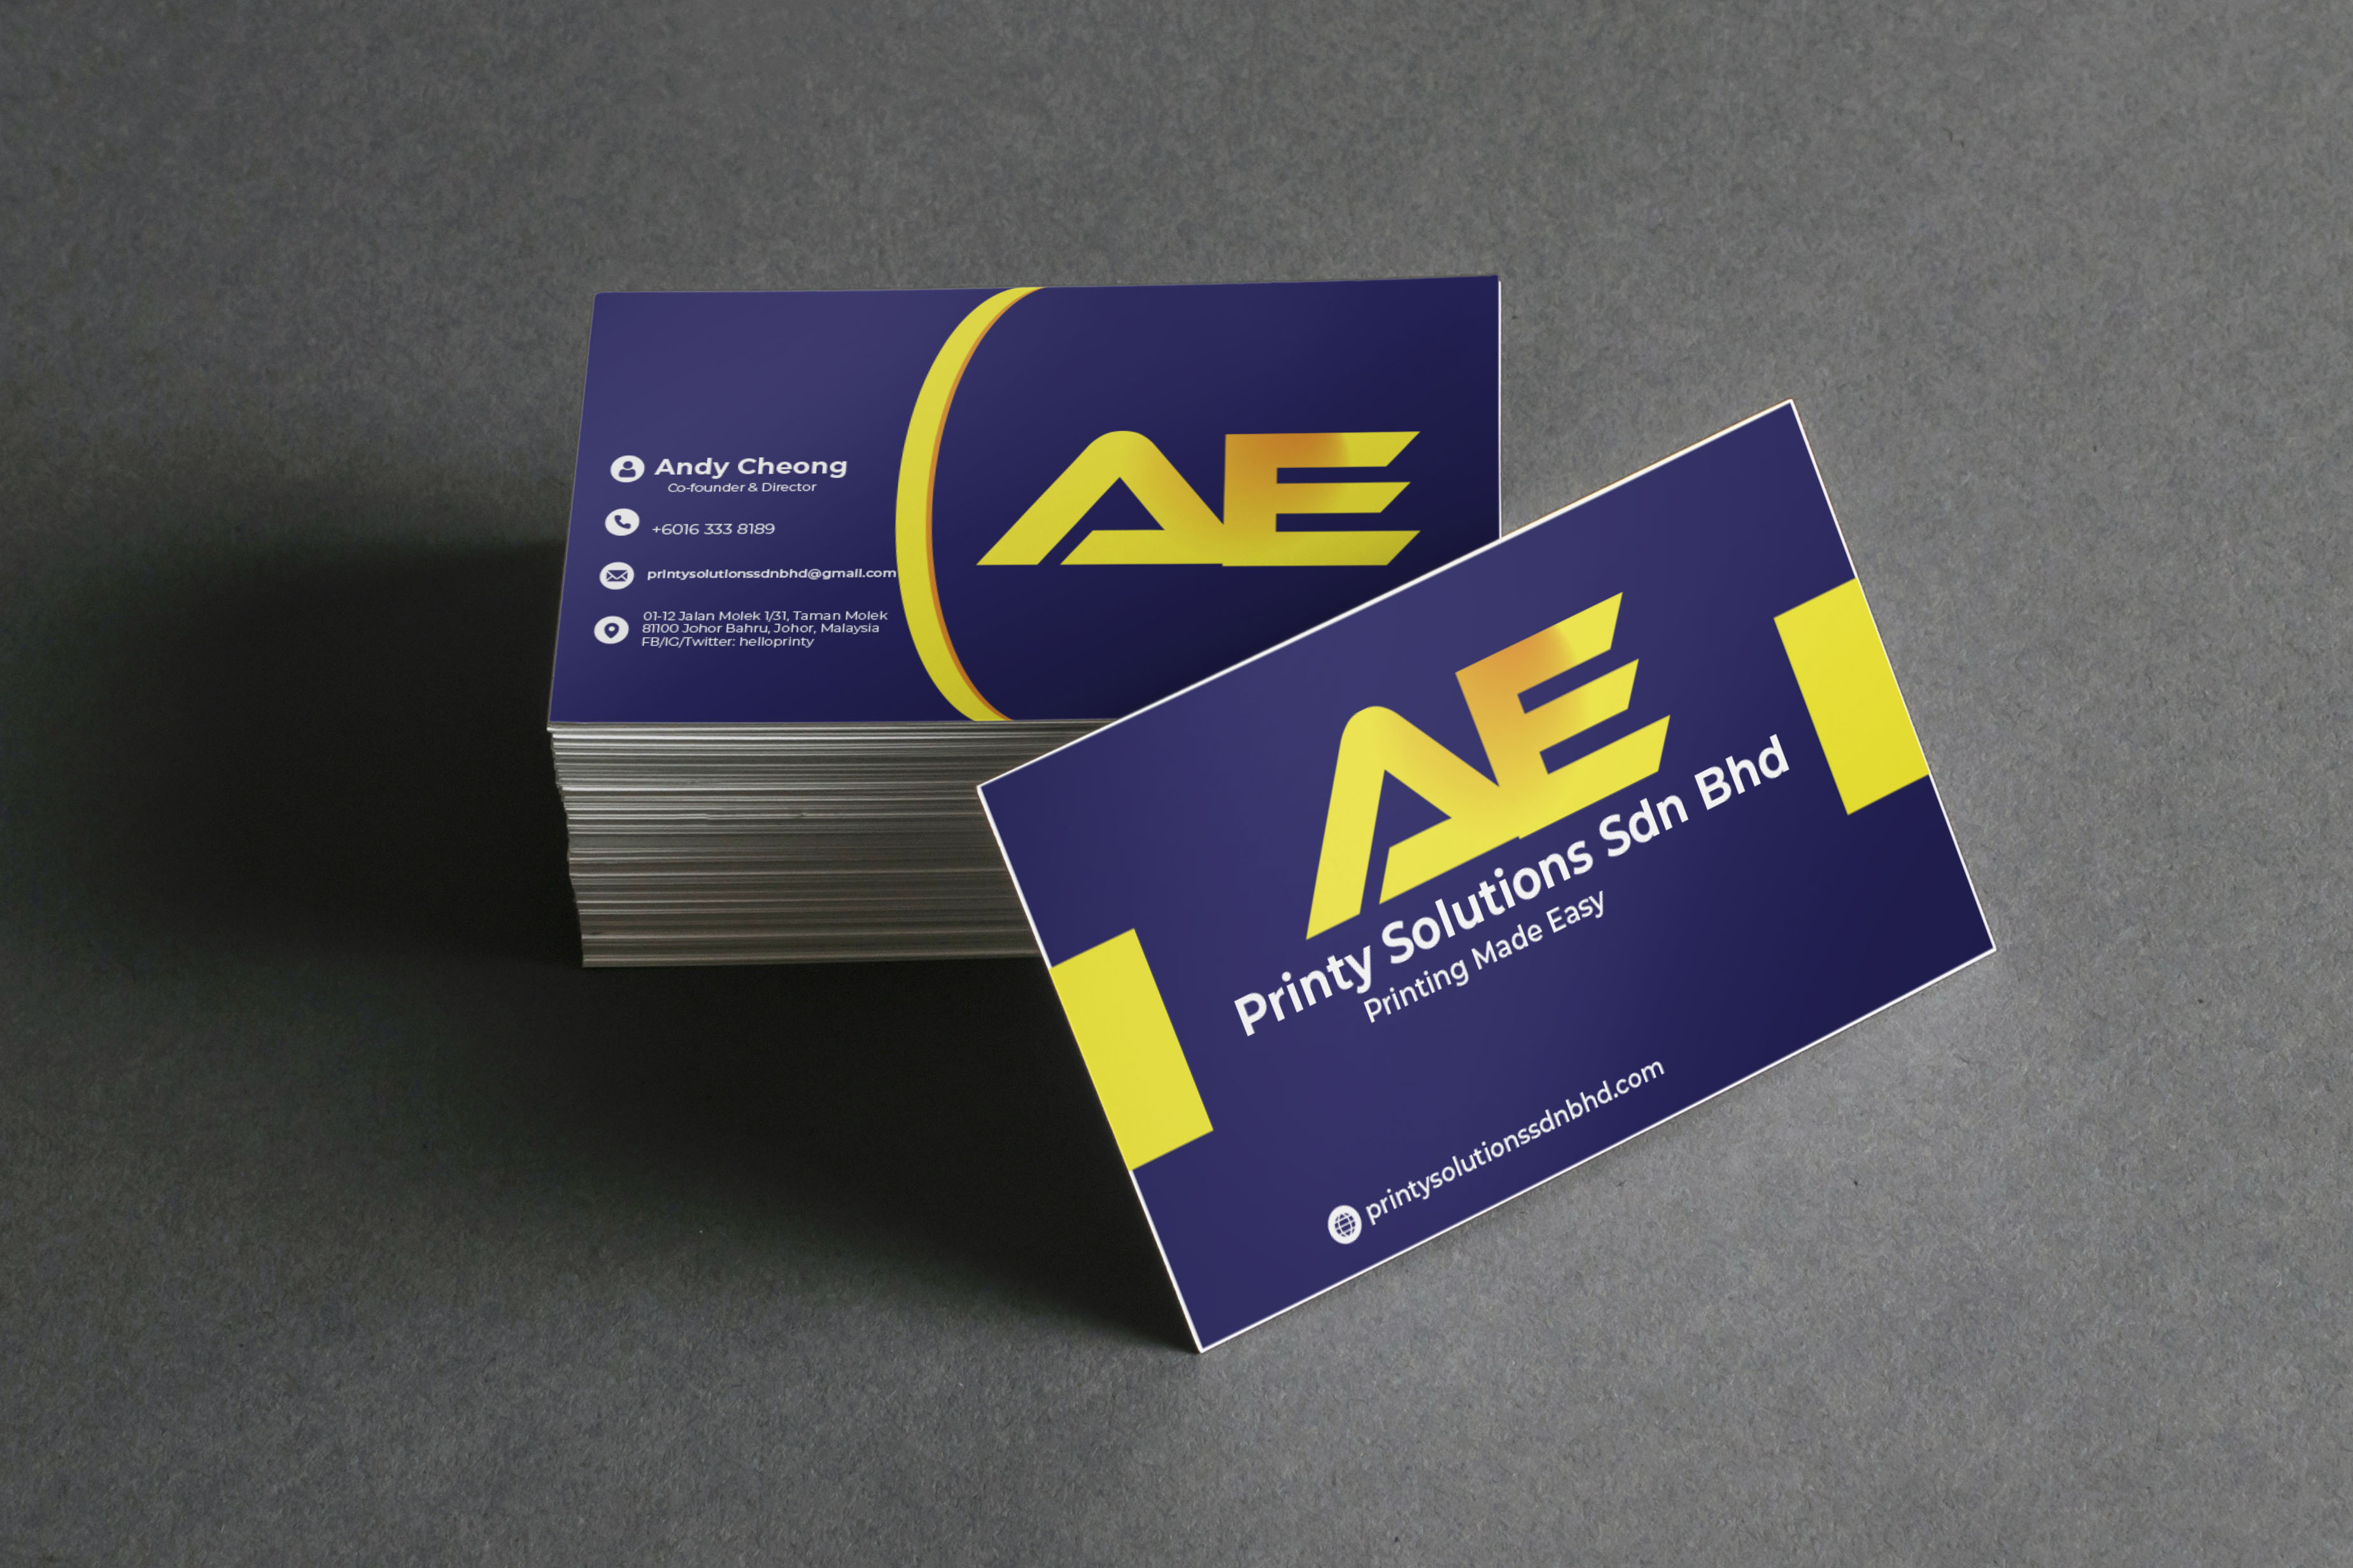 I will design professional modern minimal business card and logo for you.